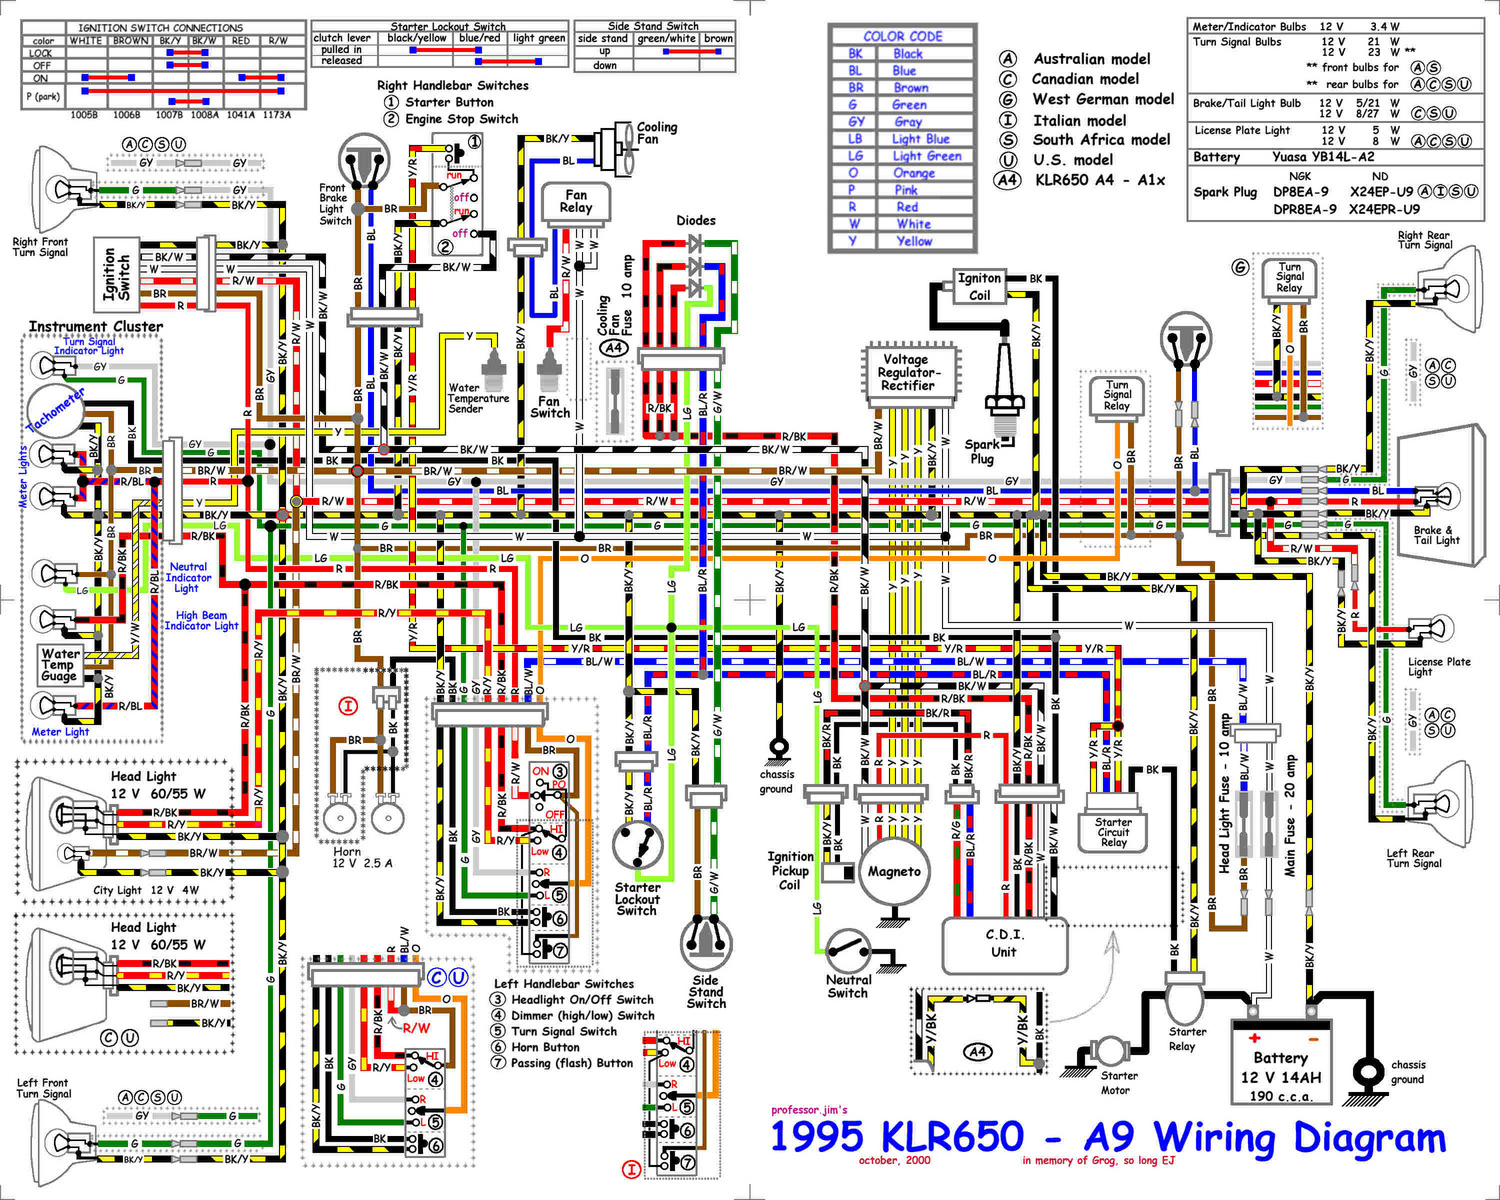 1999 polaris 300 xplorer wiring diagram with Discussion T27131 Ds547488 on Polaris 300 Carburetor Diagram together with 1999 Polaris Sportsman 500 Owners Manual together with Watch besides Polaris 2004 2005 Sportsman 6x6 Service Manual as well Polaris Atp 500 Wiring Diagram.